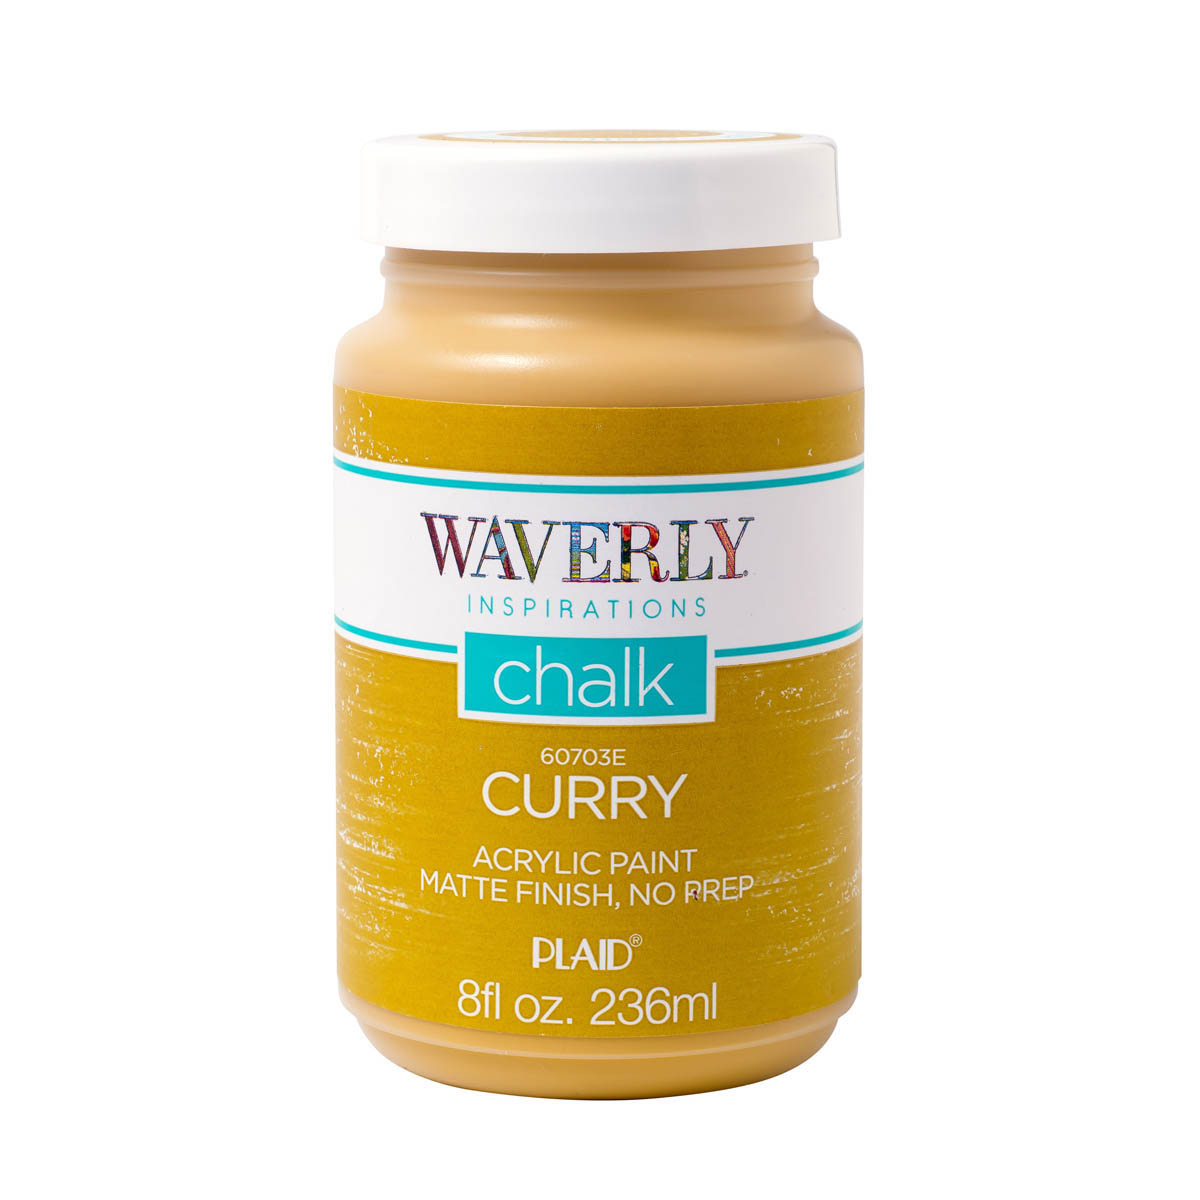 Waverly ® Inspirations Chalk Acrylic Paint - Curry, 8 oz.